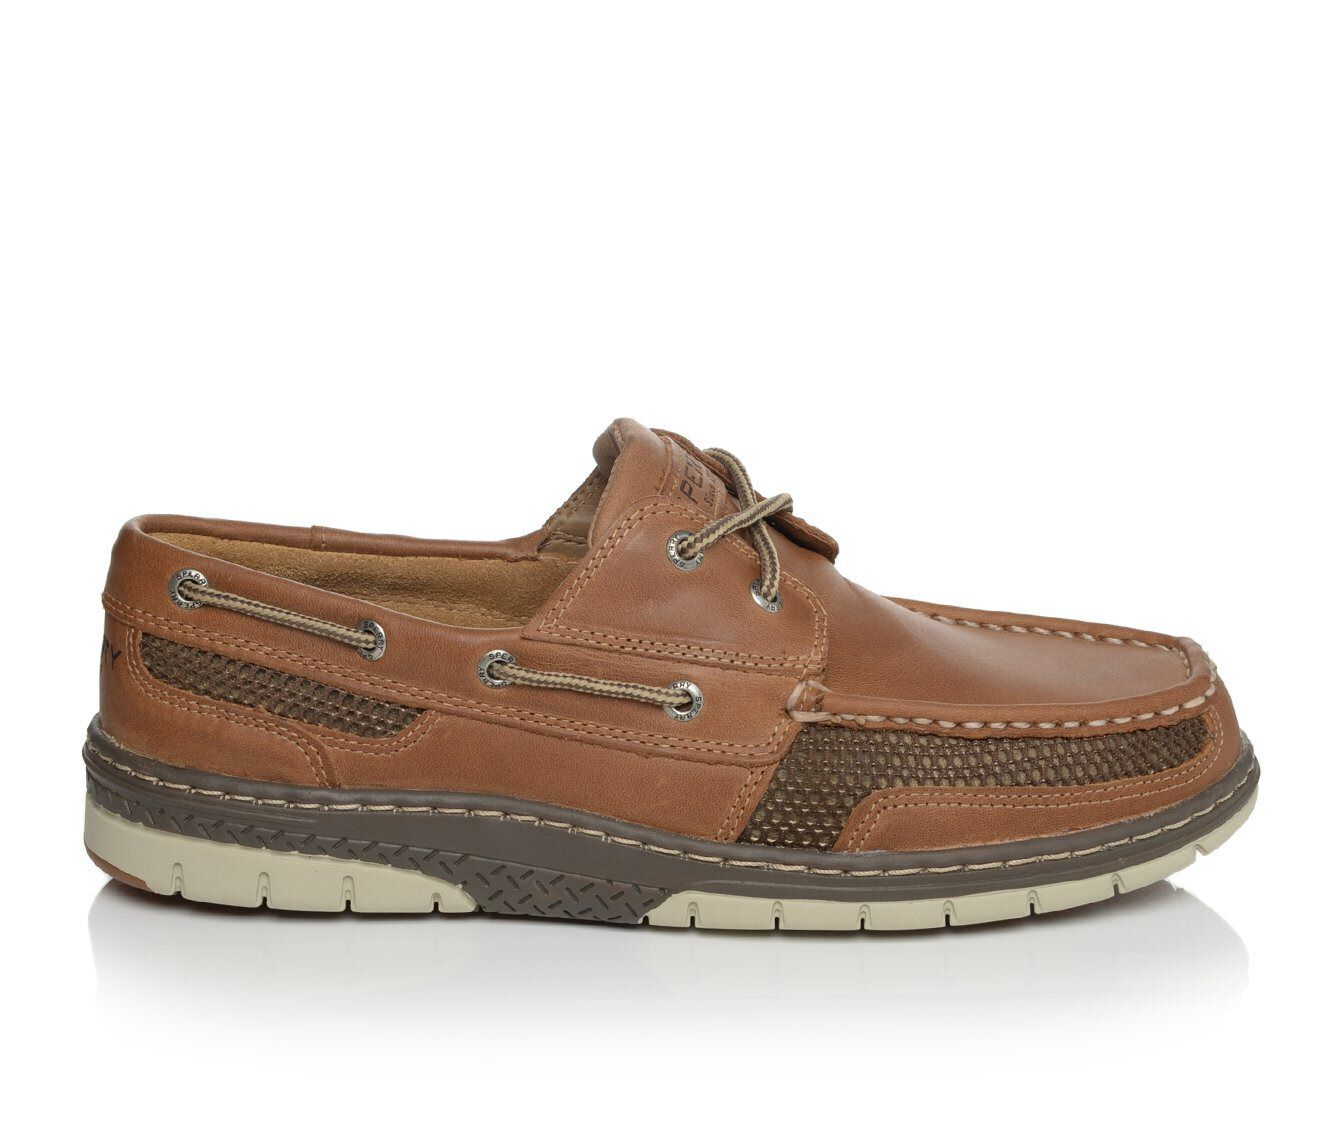 Adorable Men's Sperry Tarpon Ultra Lite Boat Shoes Tan Leather